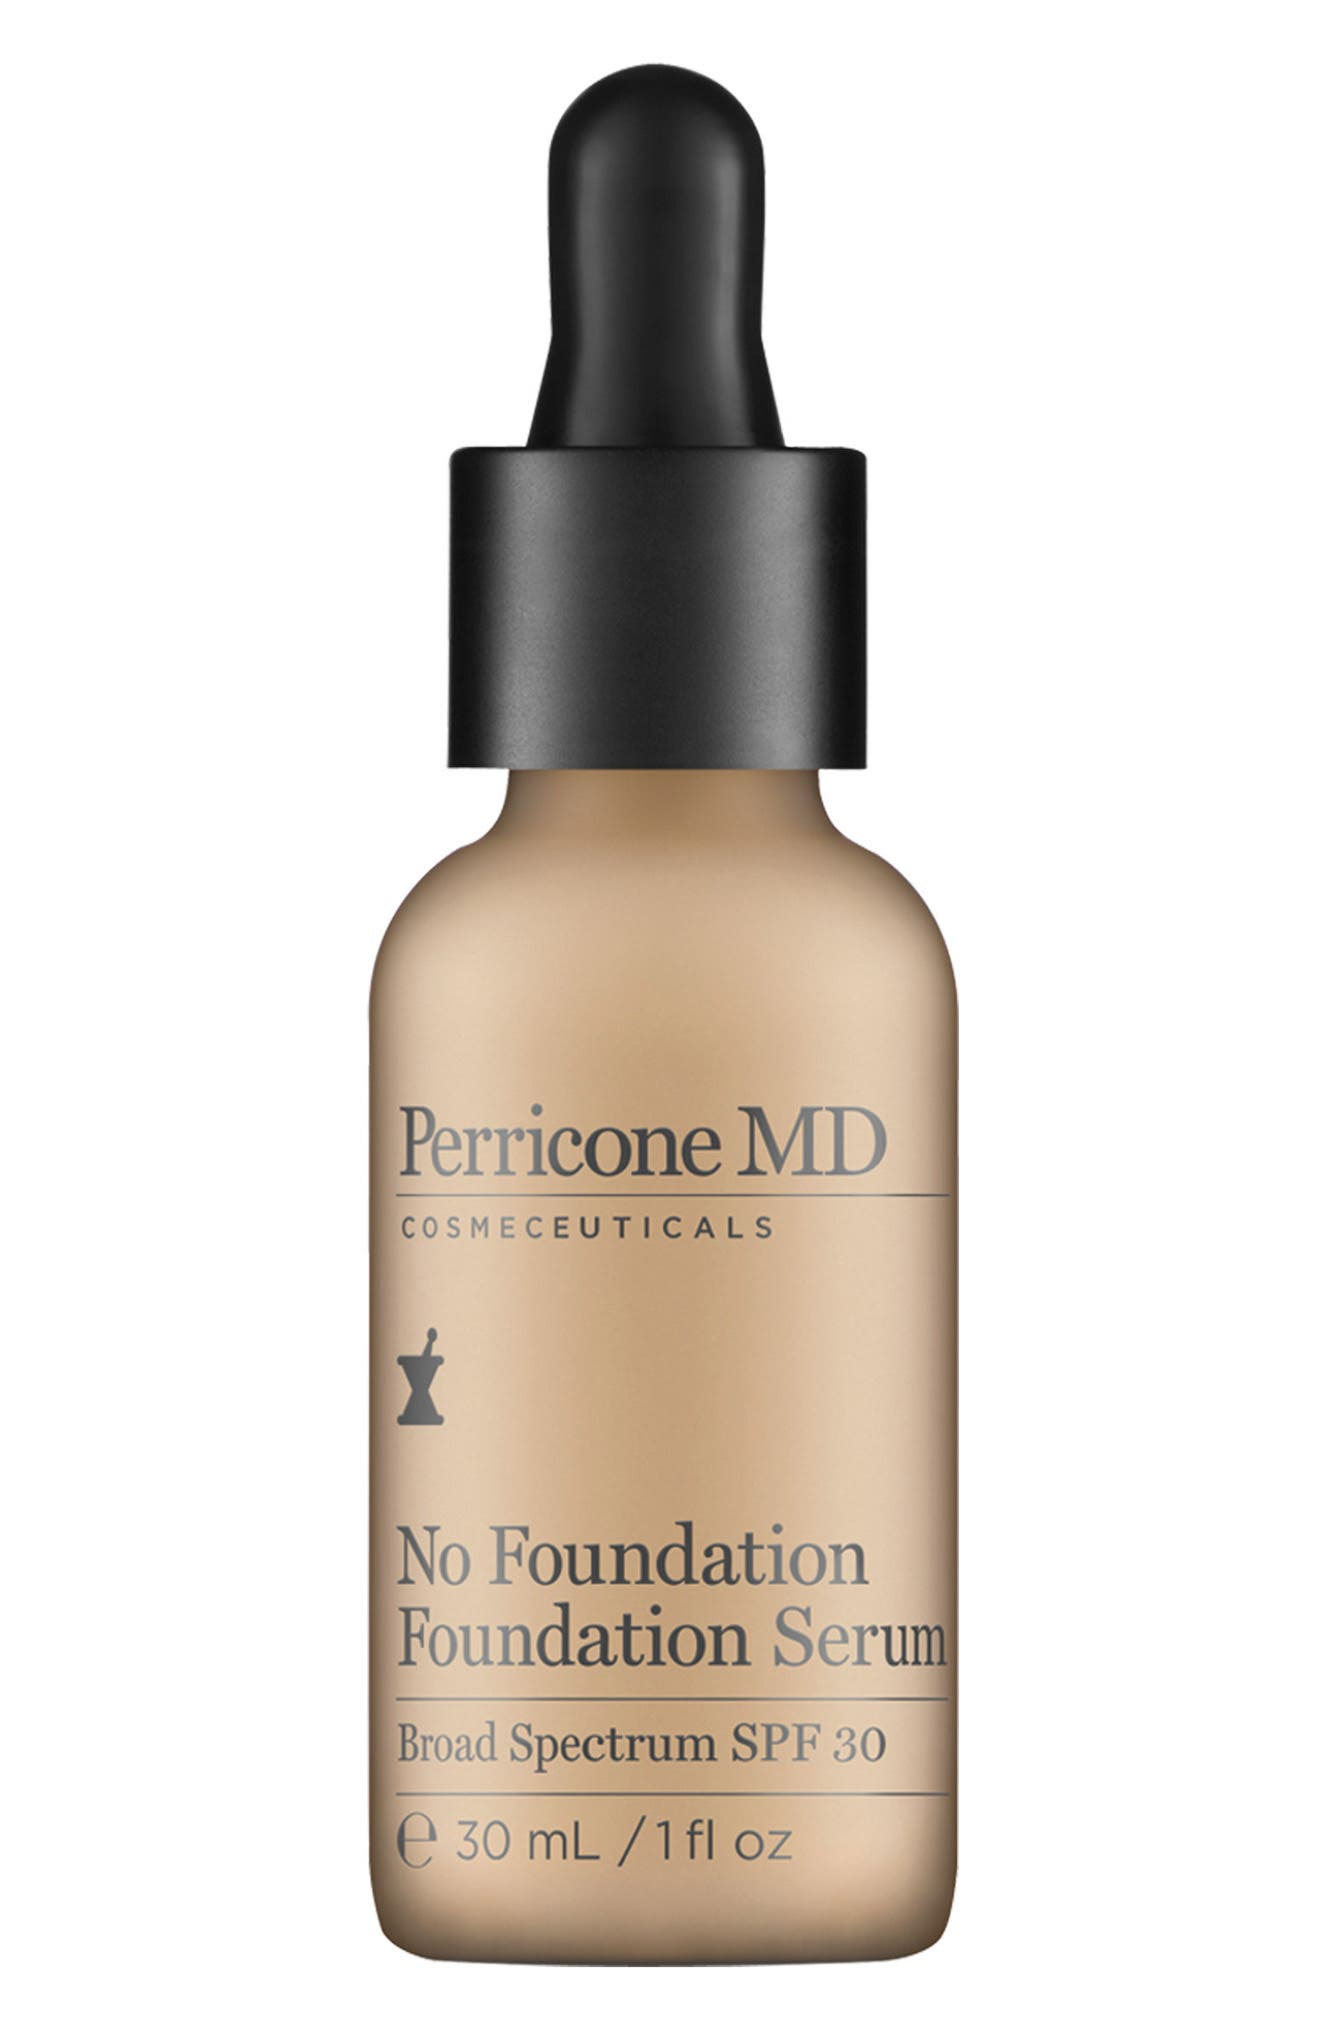 Perricone MD 'No Foundation' Foundation Serum Broad Spectrum SPF 30